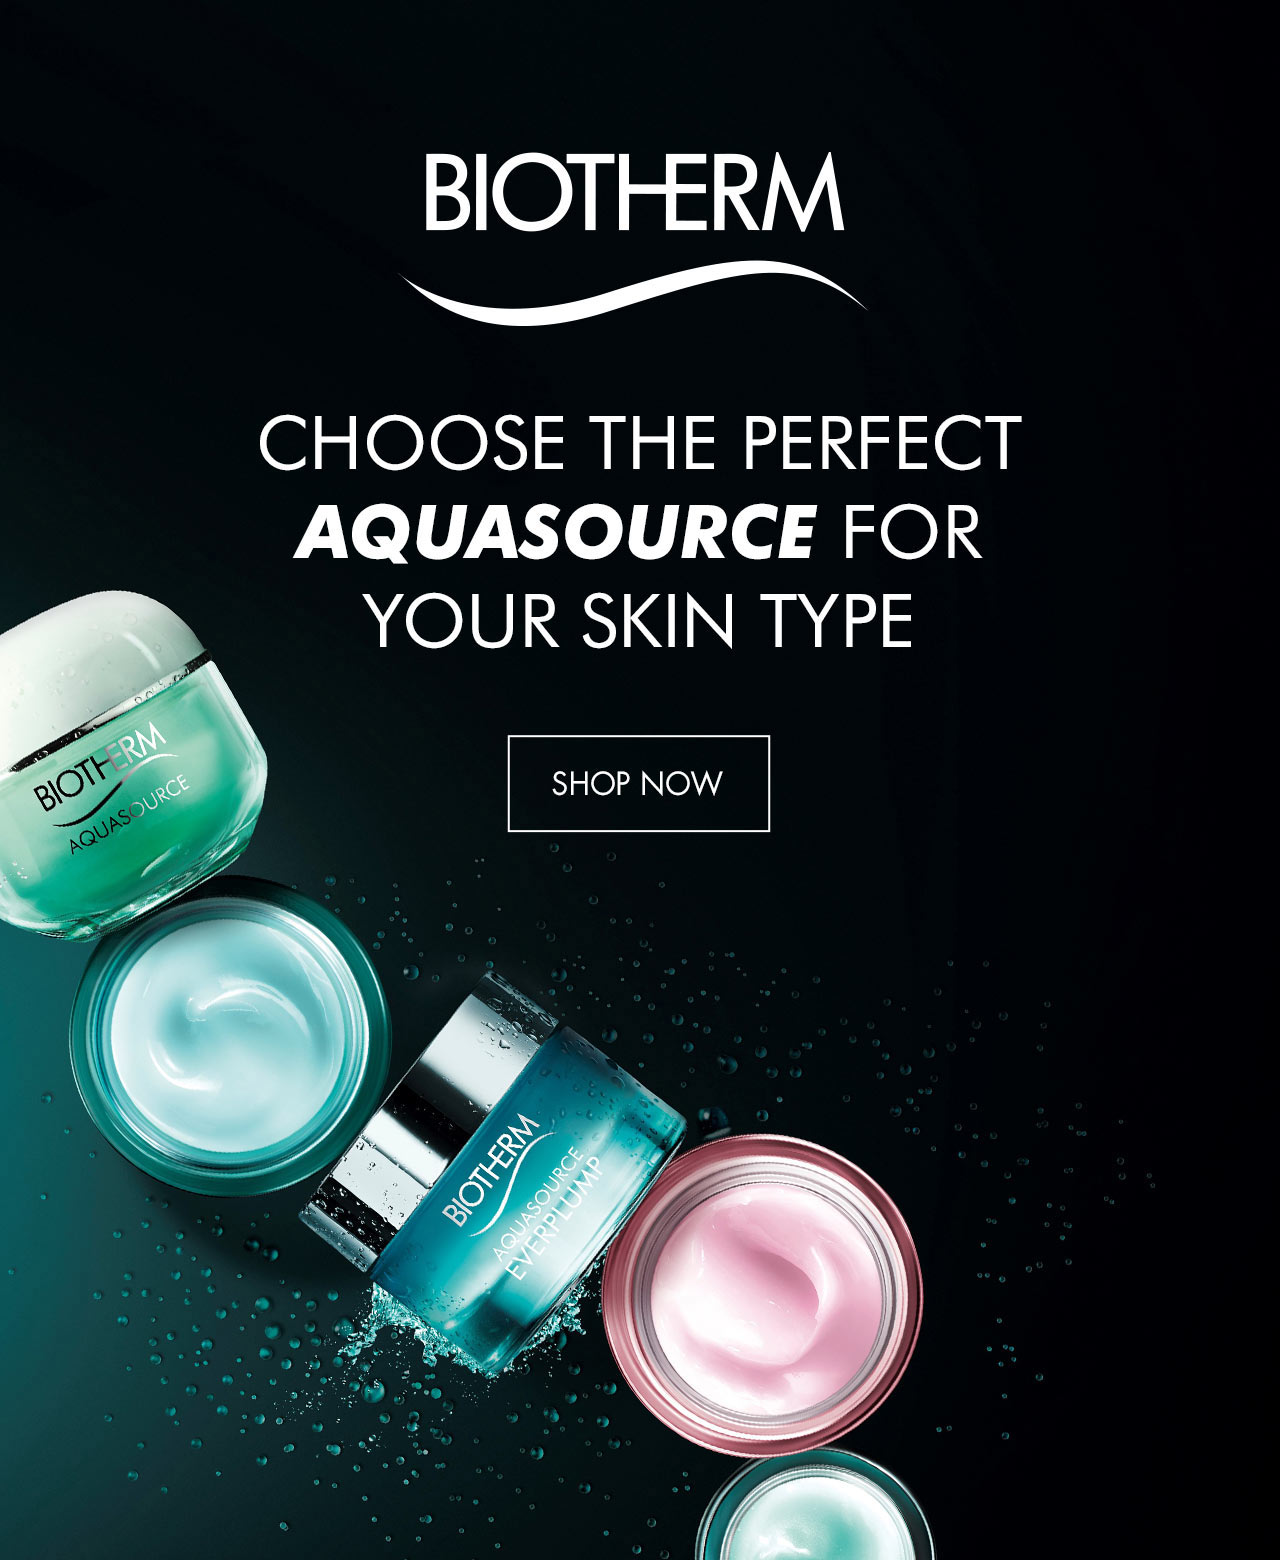 Biotherm Choose the perfect aquasource for your skin type